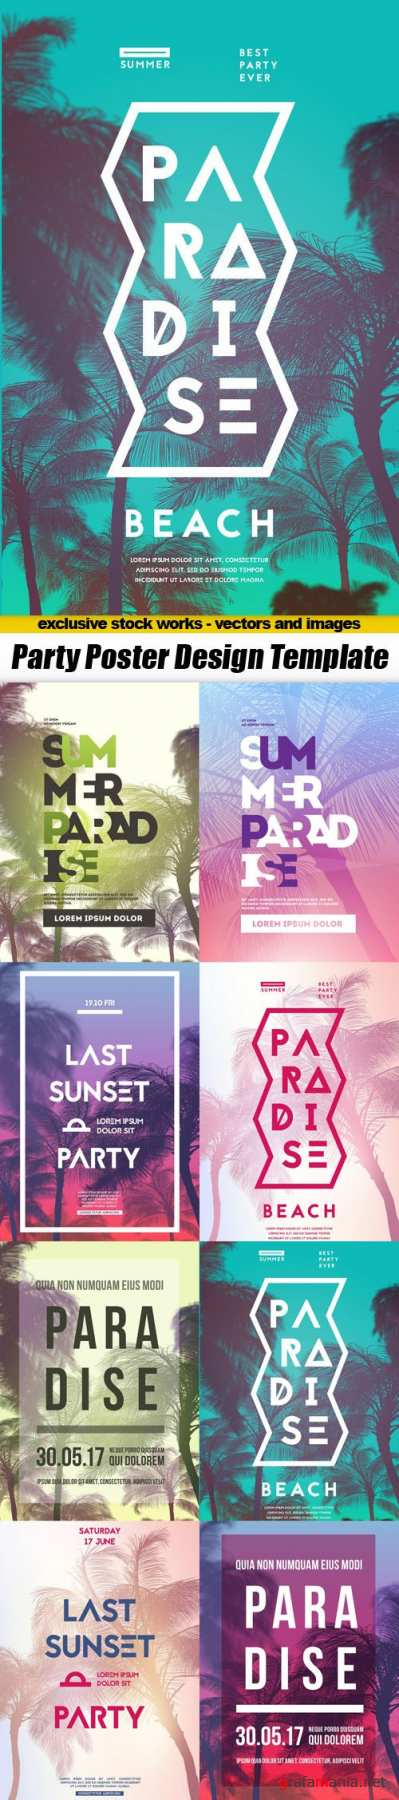 Party Poster Design Template - 8xEPS